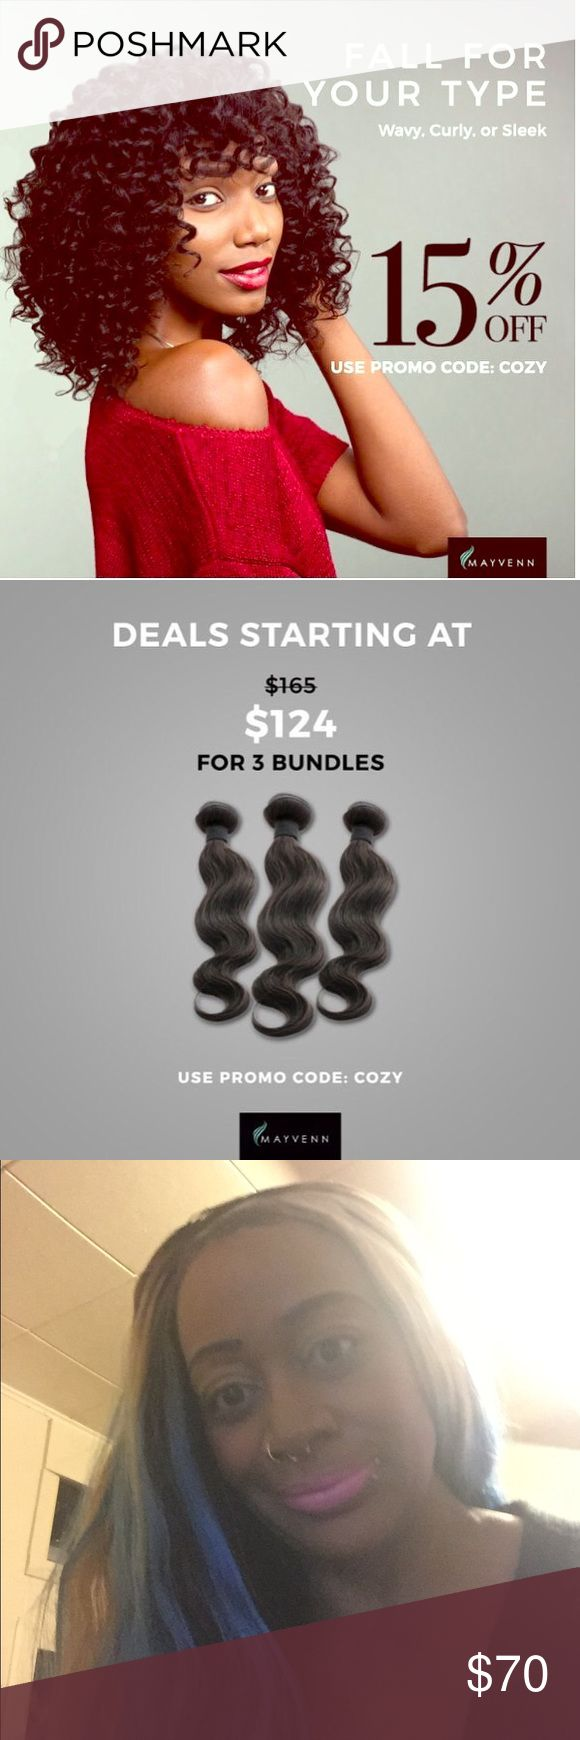 Beautiful 100 percent virgin hair Hi beautiful ladies I'm running a Big Sale all hair 15% percent off and FREE SHIPPING if you order today you will receive your hair by Wednesday morning.Now you must contact me so you can order on my online hair weave shop. Accessories Hair Accessories